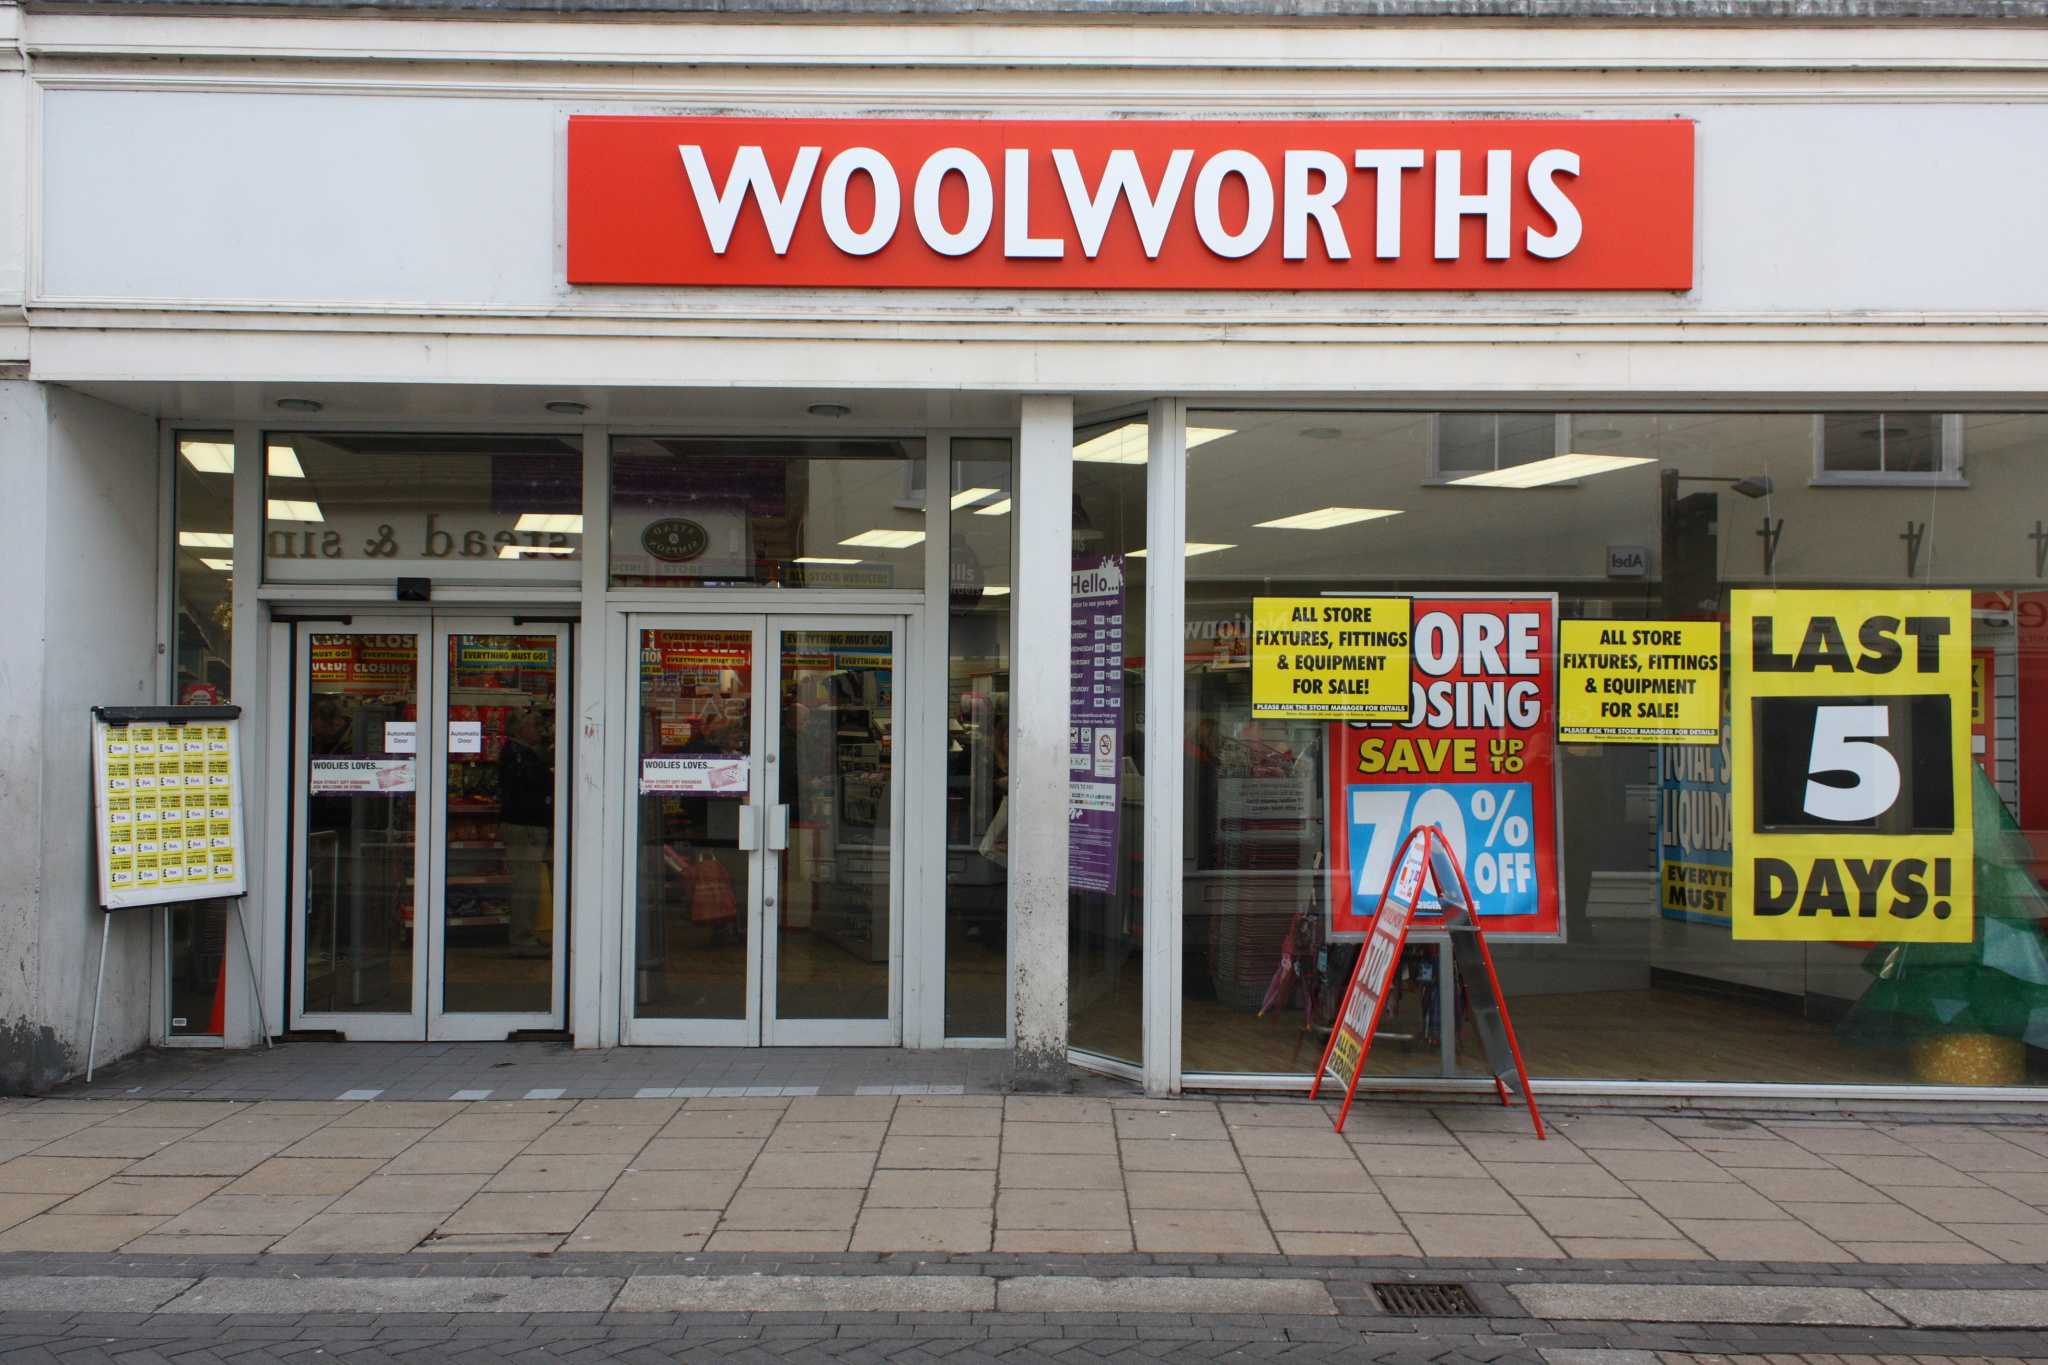 File:Woolworths Diss - Closing Down - Exterior.jpg ...